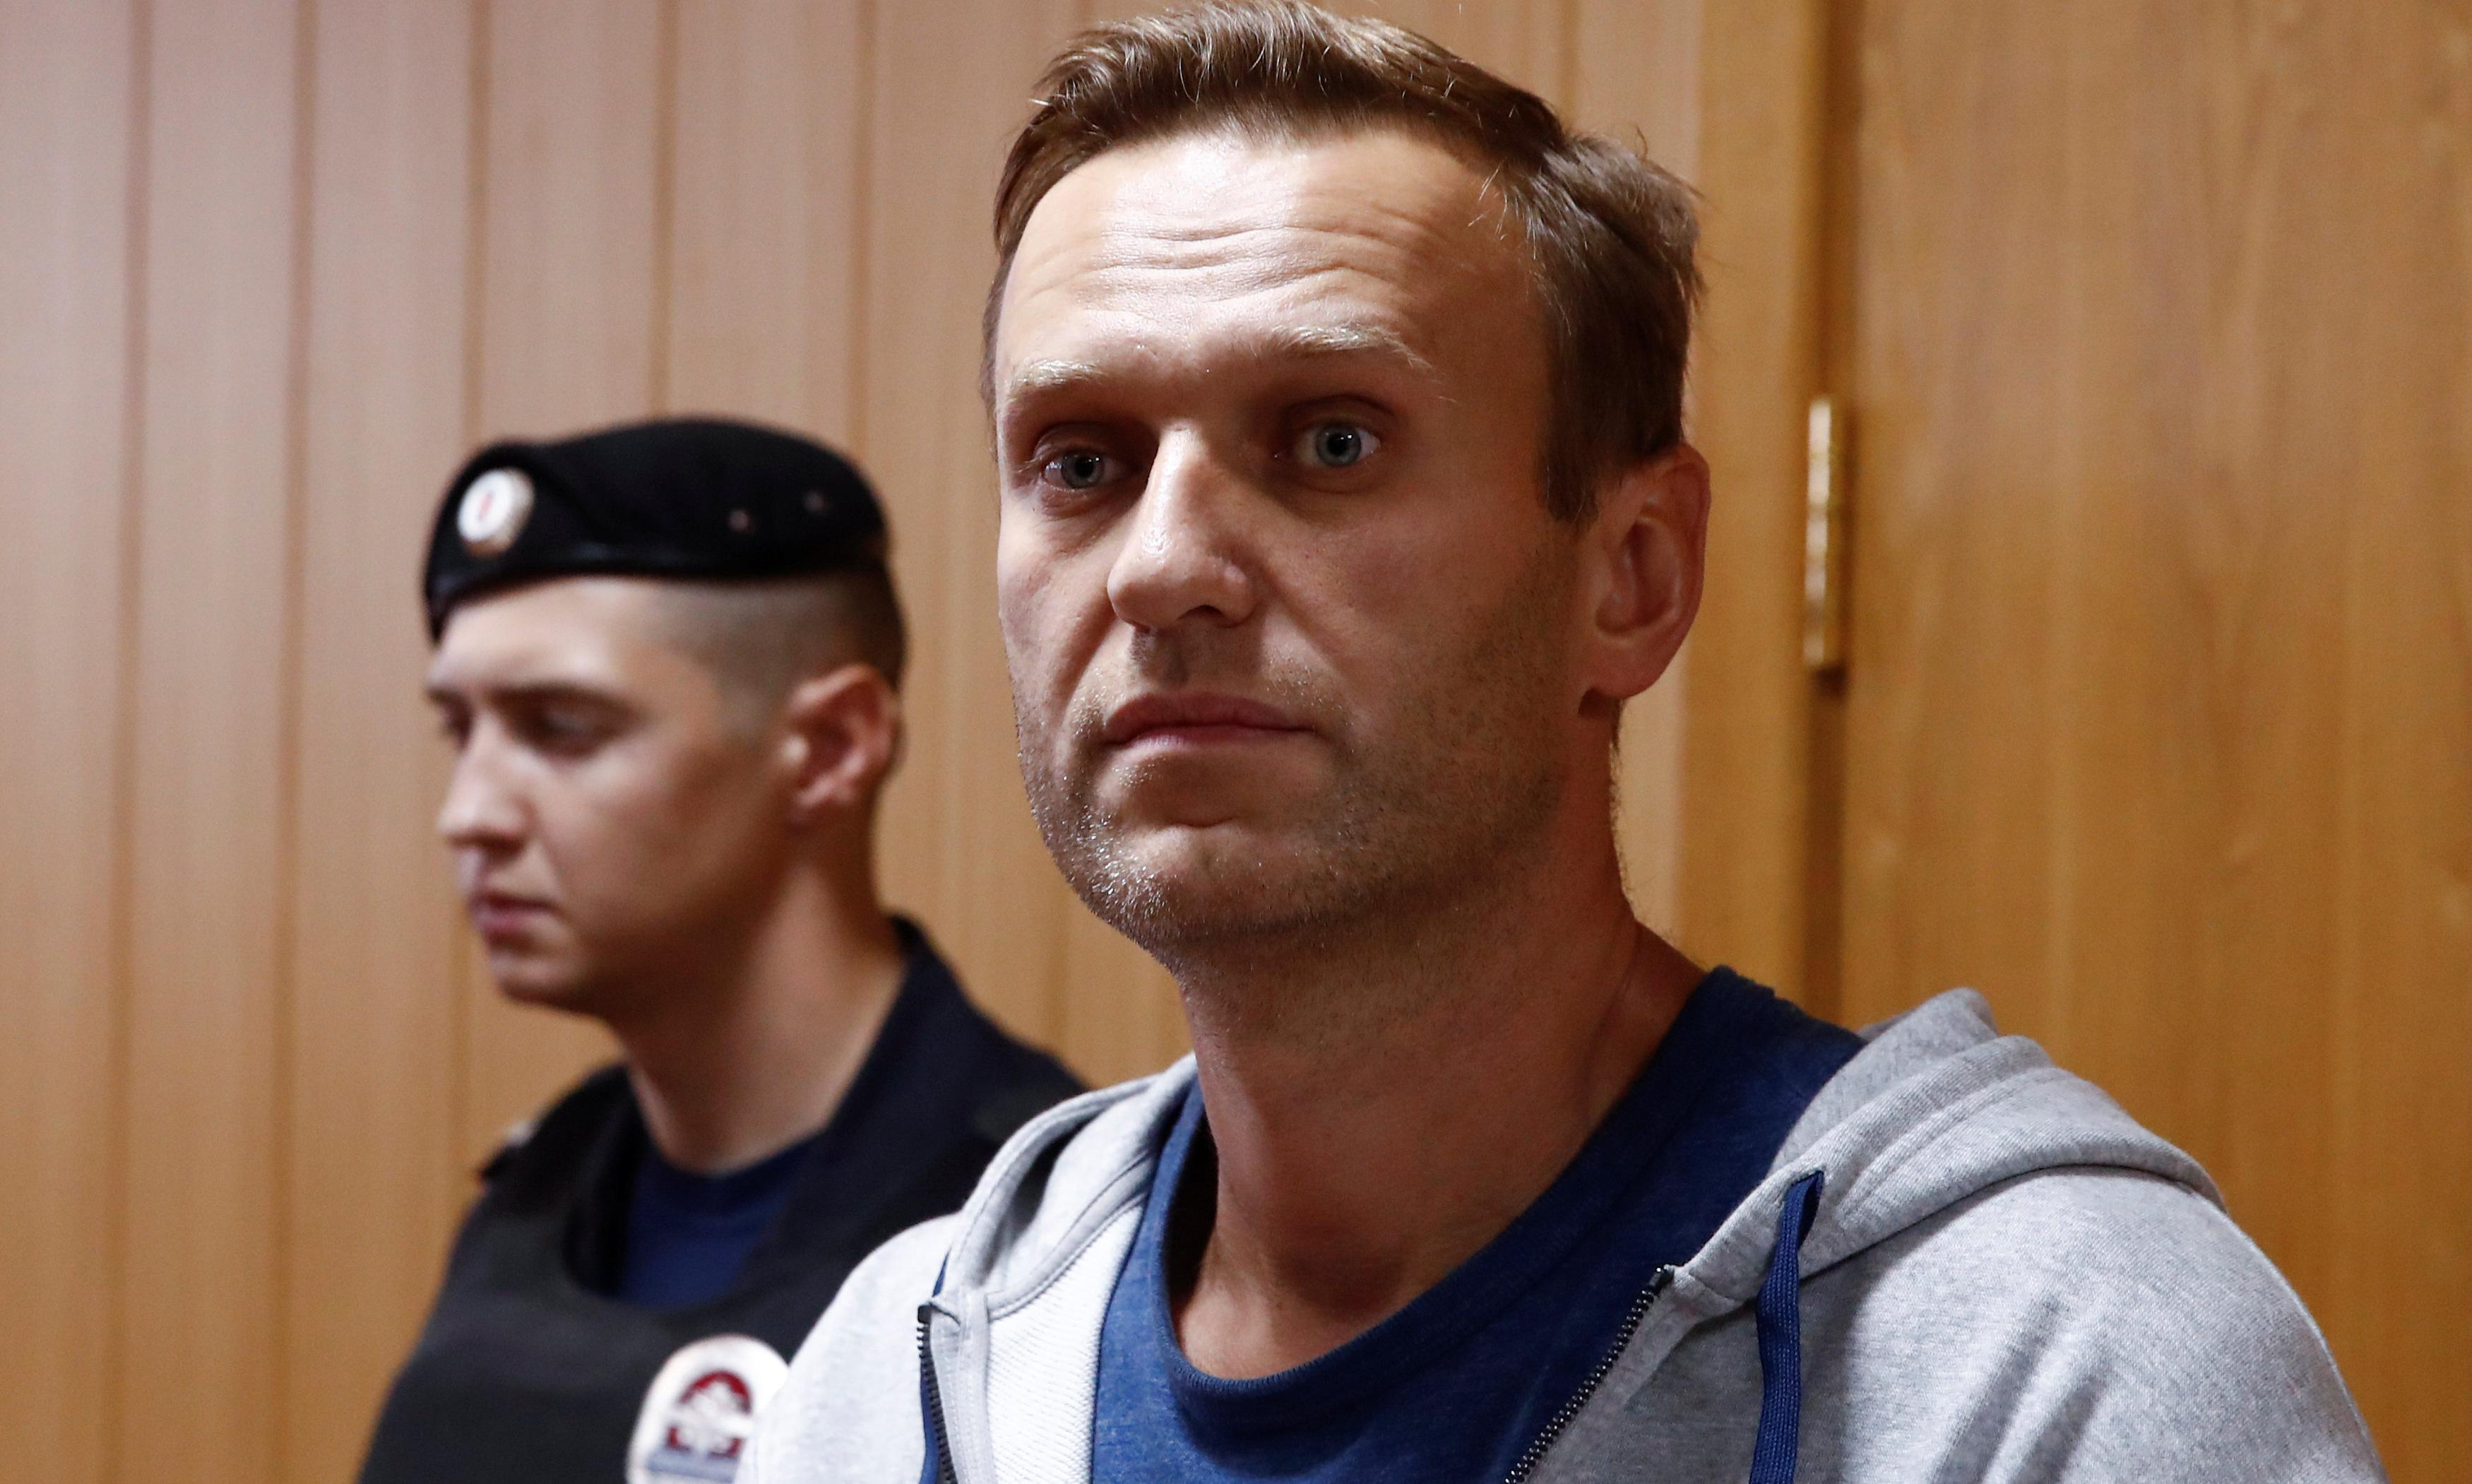 Russia violated rights of detained opposition leader, court rules